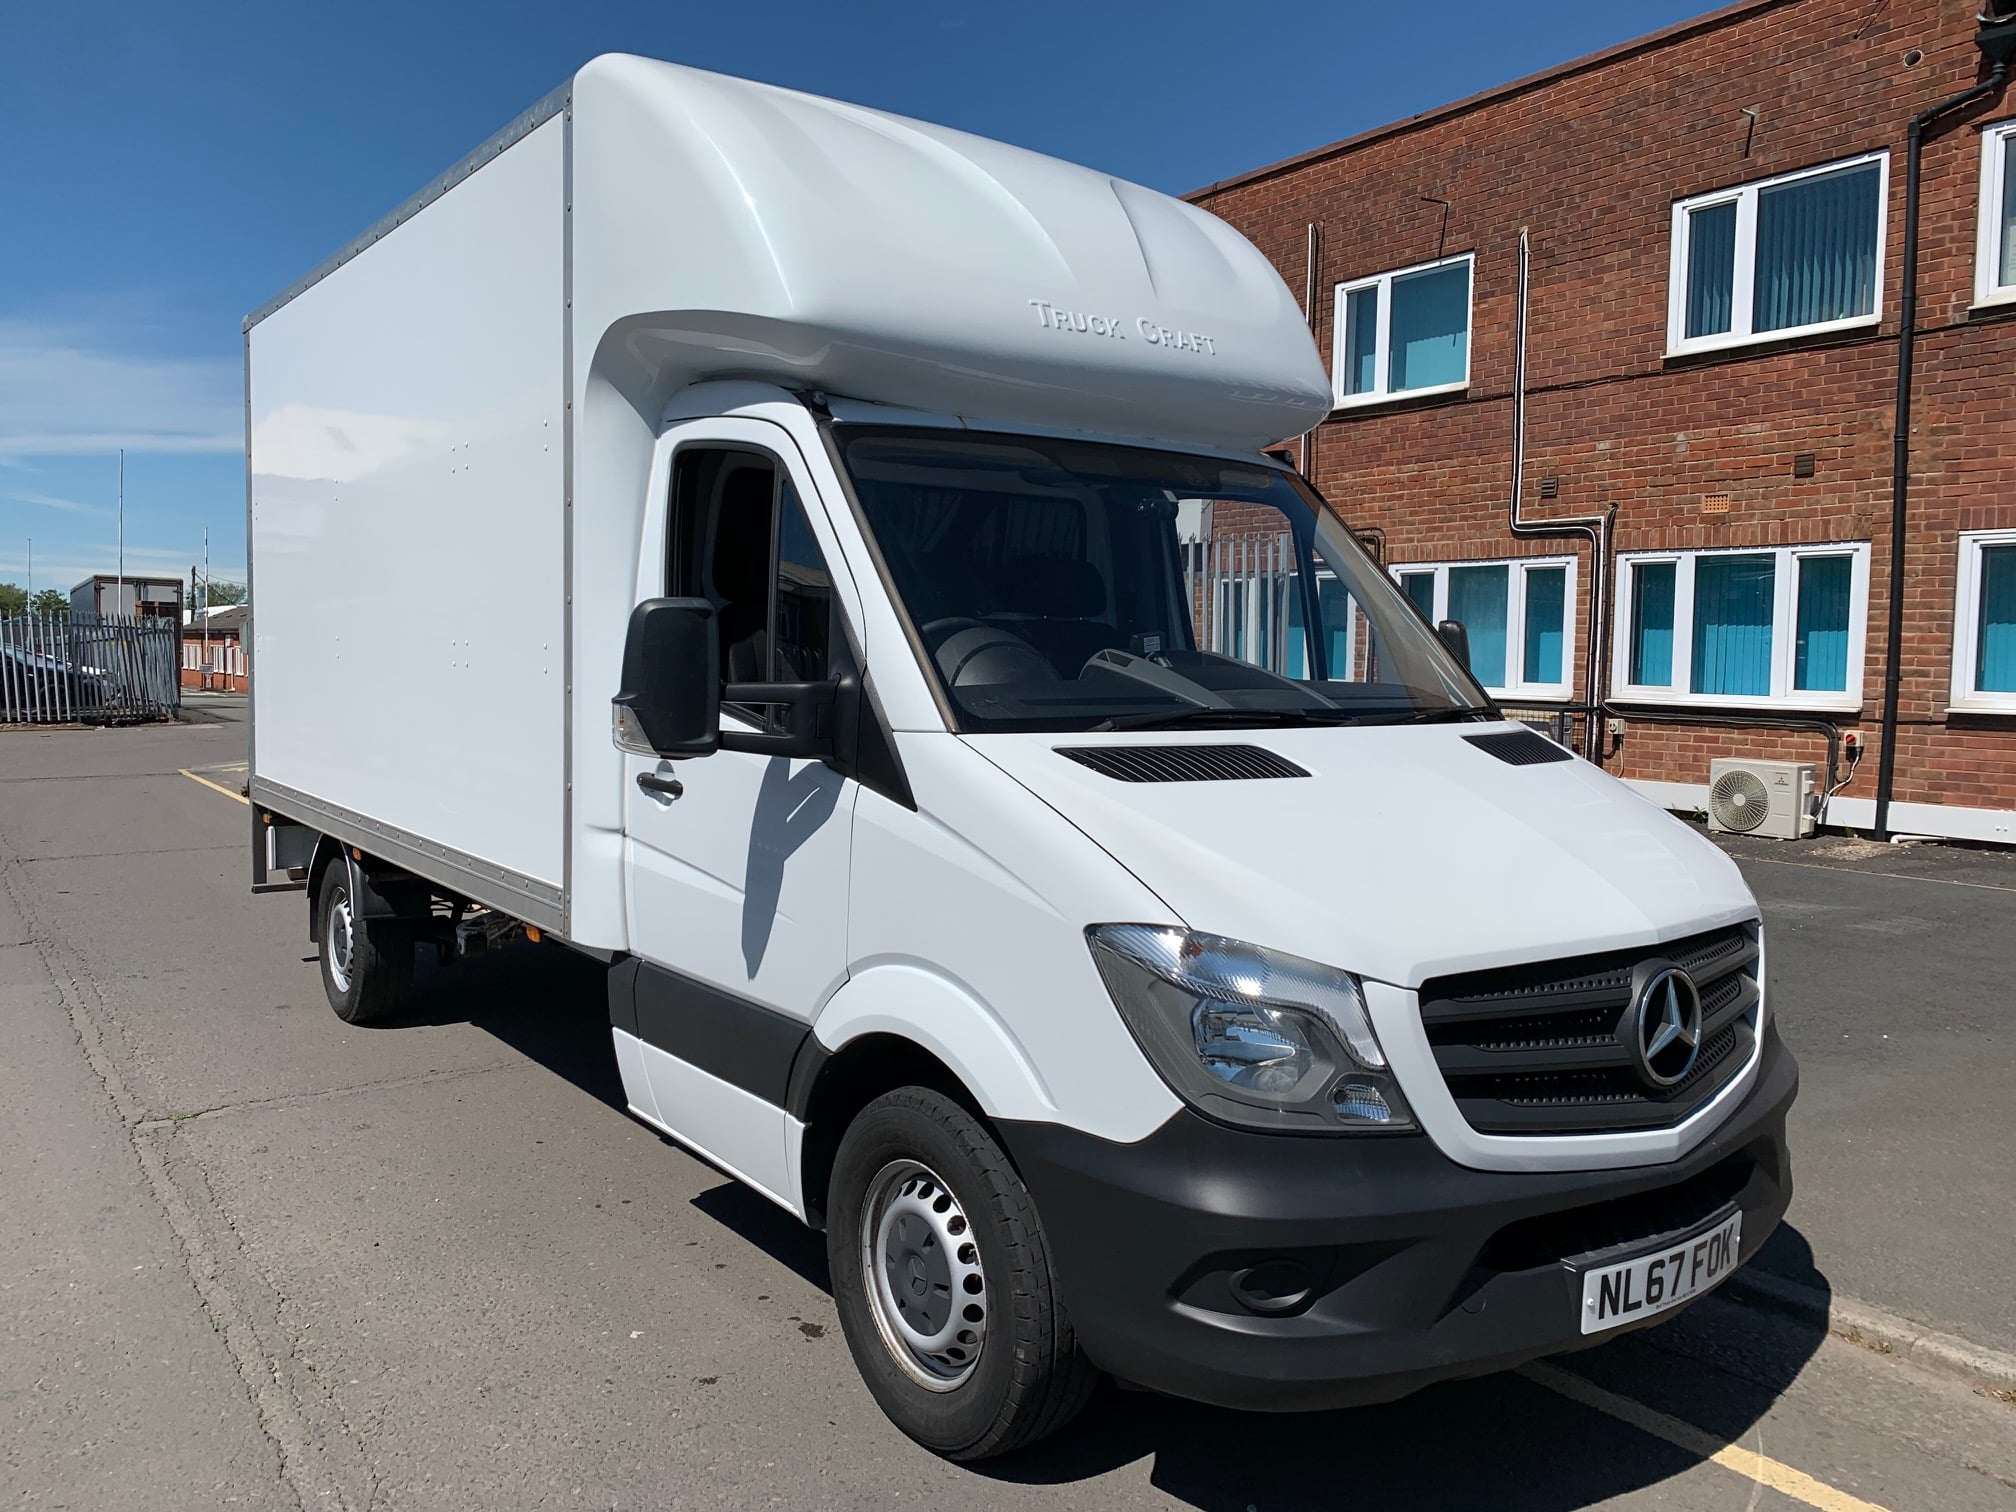 2017 (67) Mercedes Sprinter, Manual Gearbox, Day Cab, 140bhp, DEL Column Tailift (500kg Capacity), Radio/USB, Boxvan Body, Roller Shutter Rear Door, Steering Wheel Controls, Choice & Warranty Available.